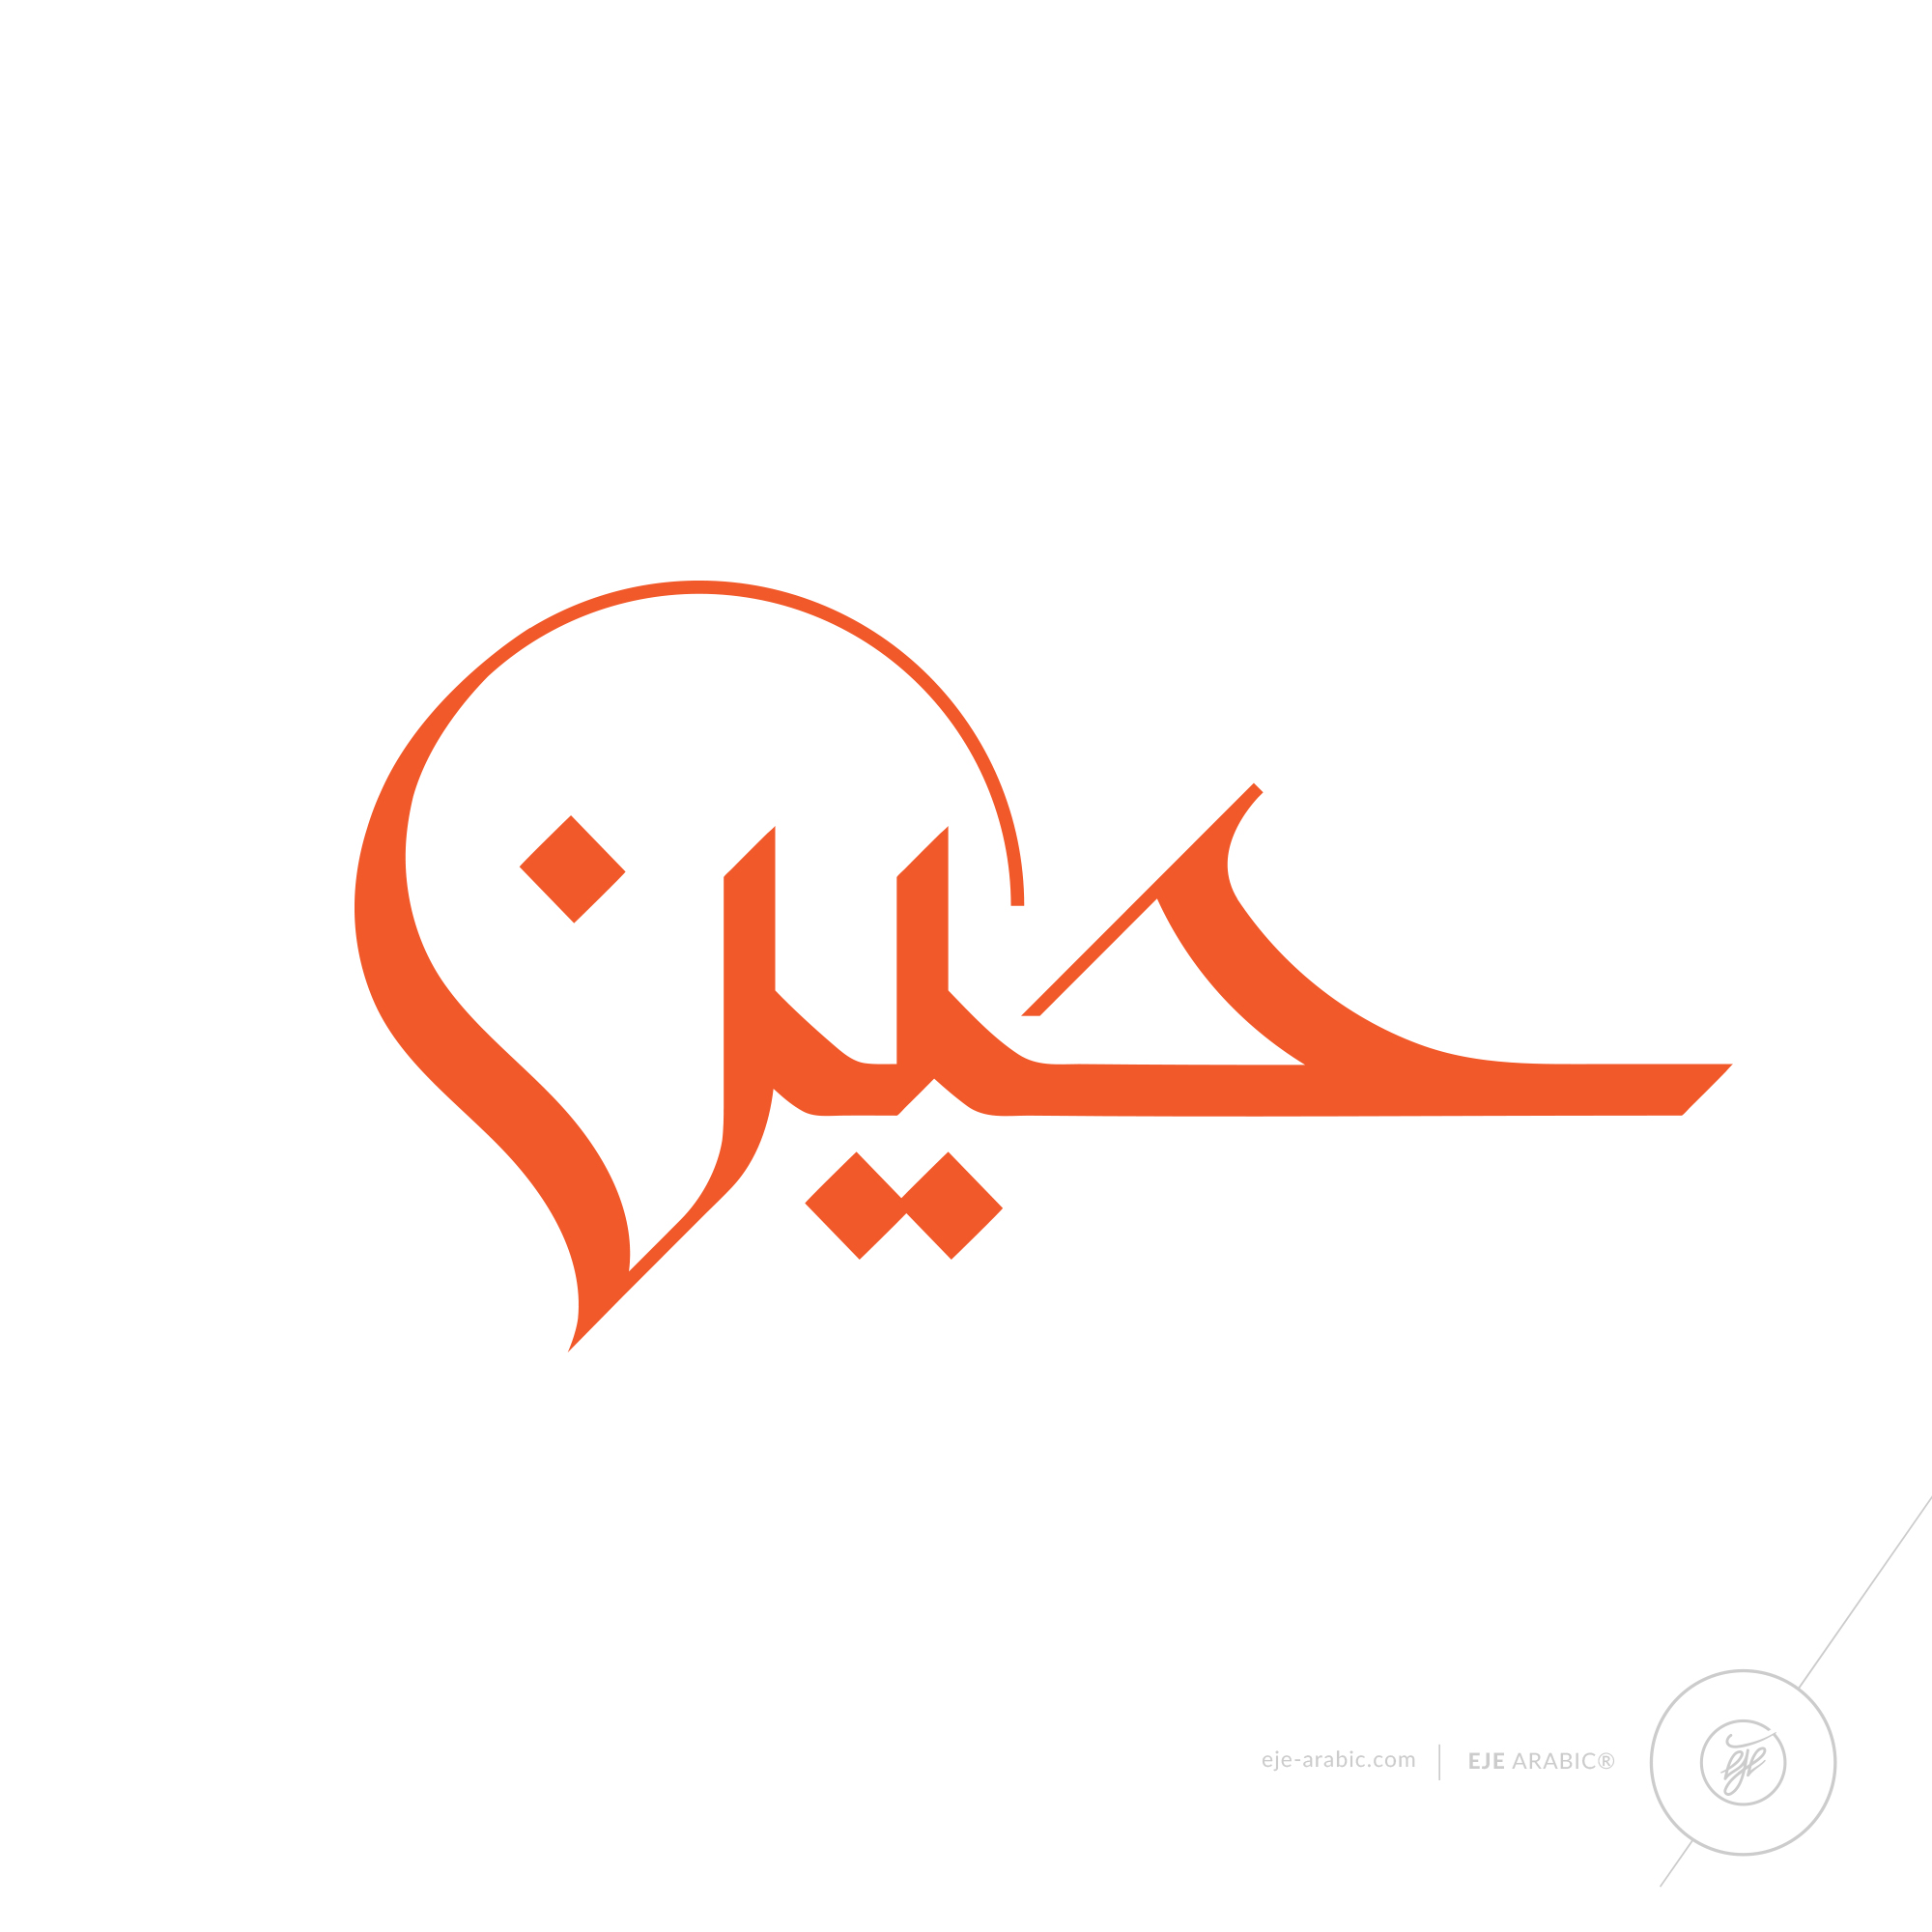 Arabic logo by eje studio ebrahim jaffar one bh on